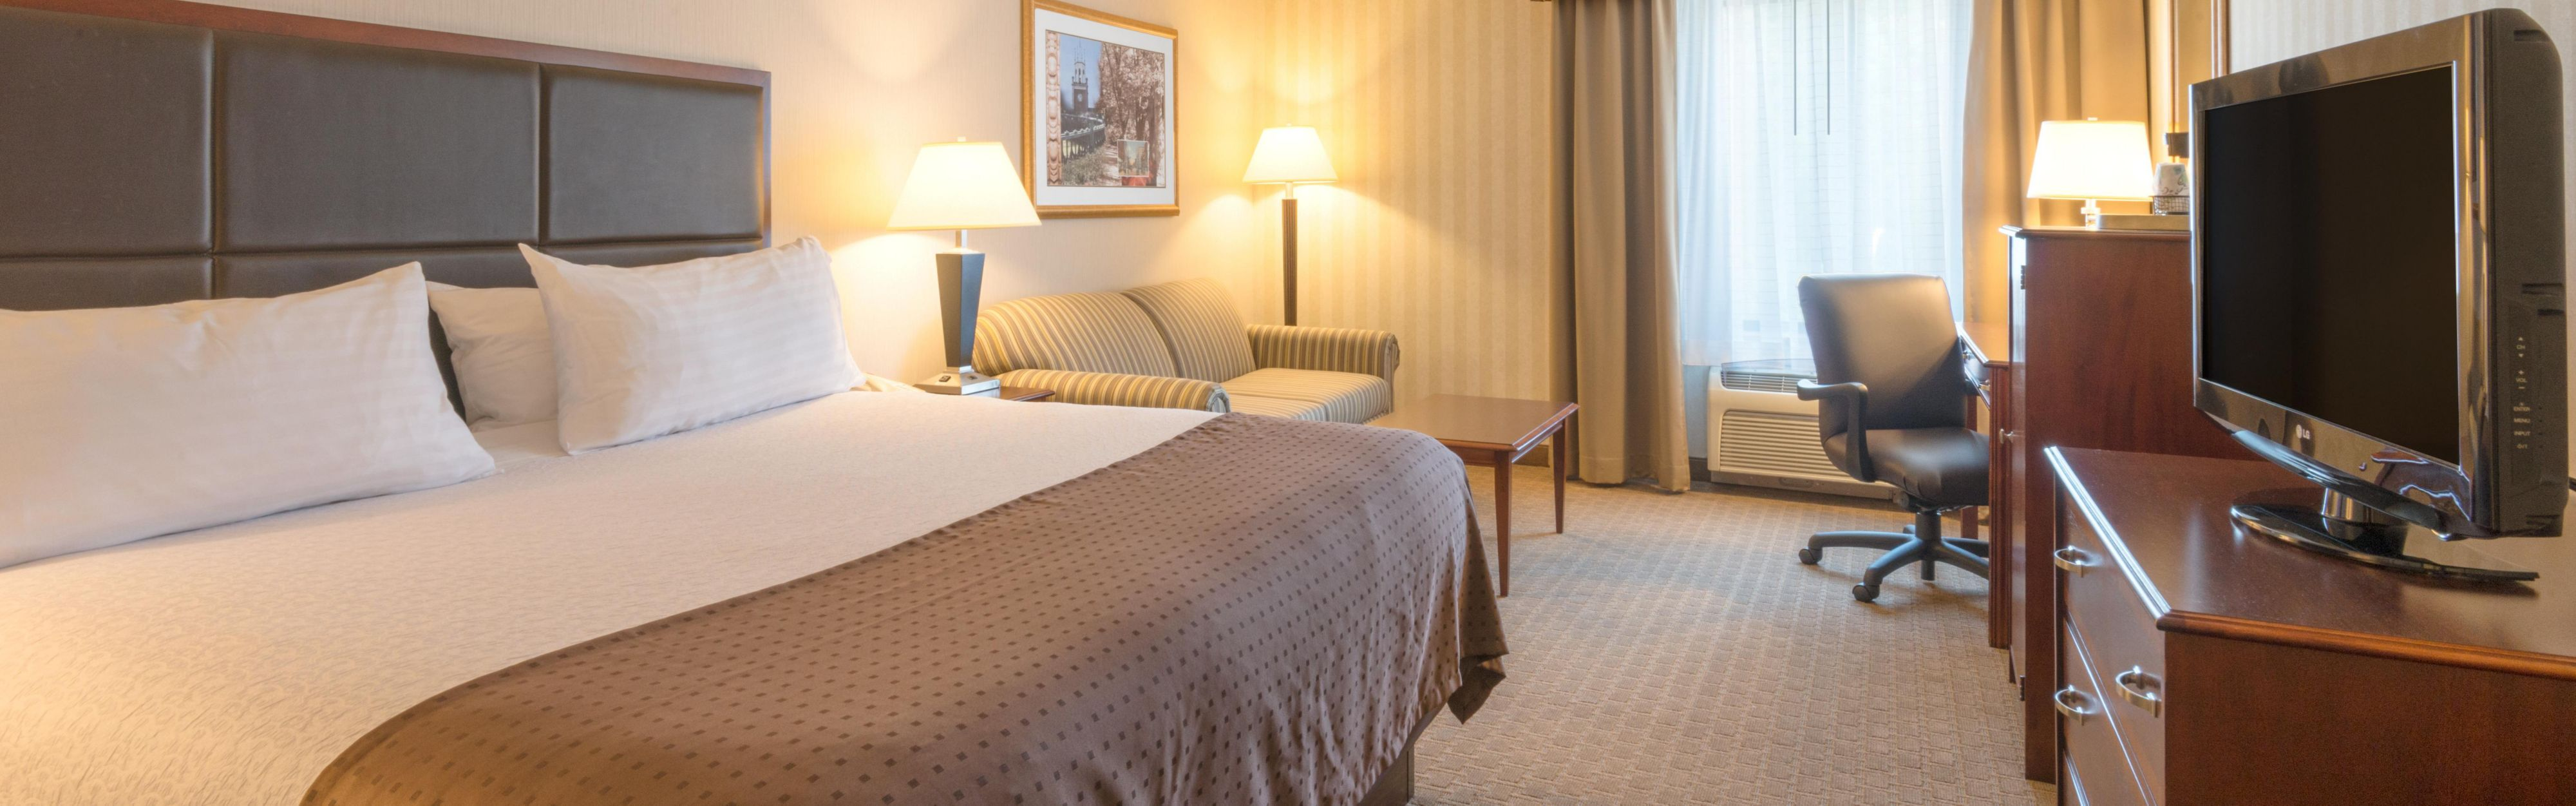 Holiday Inn Manchester Airport image 1